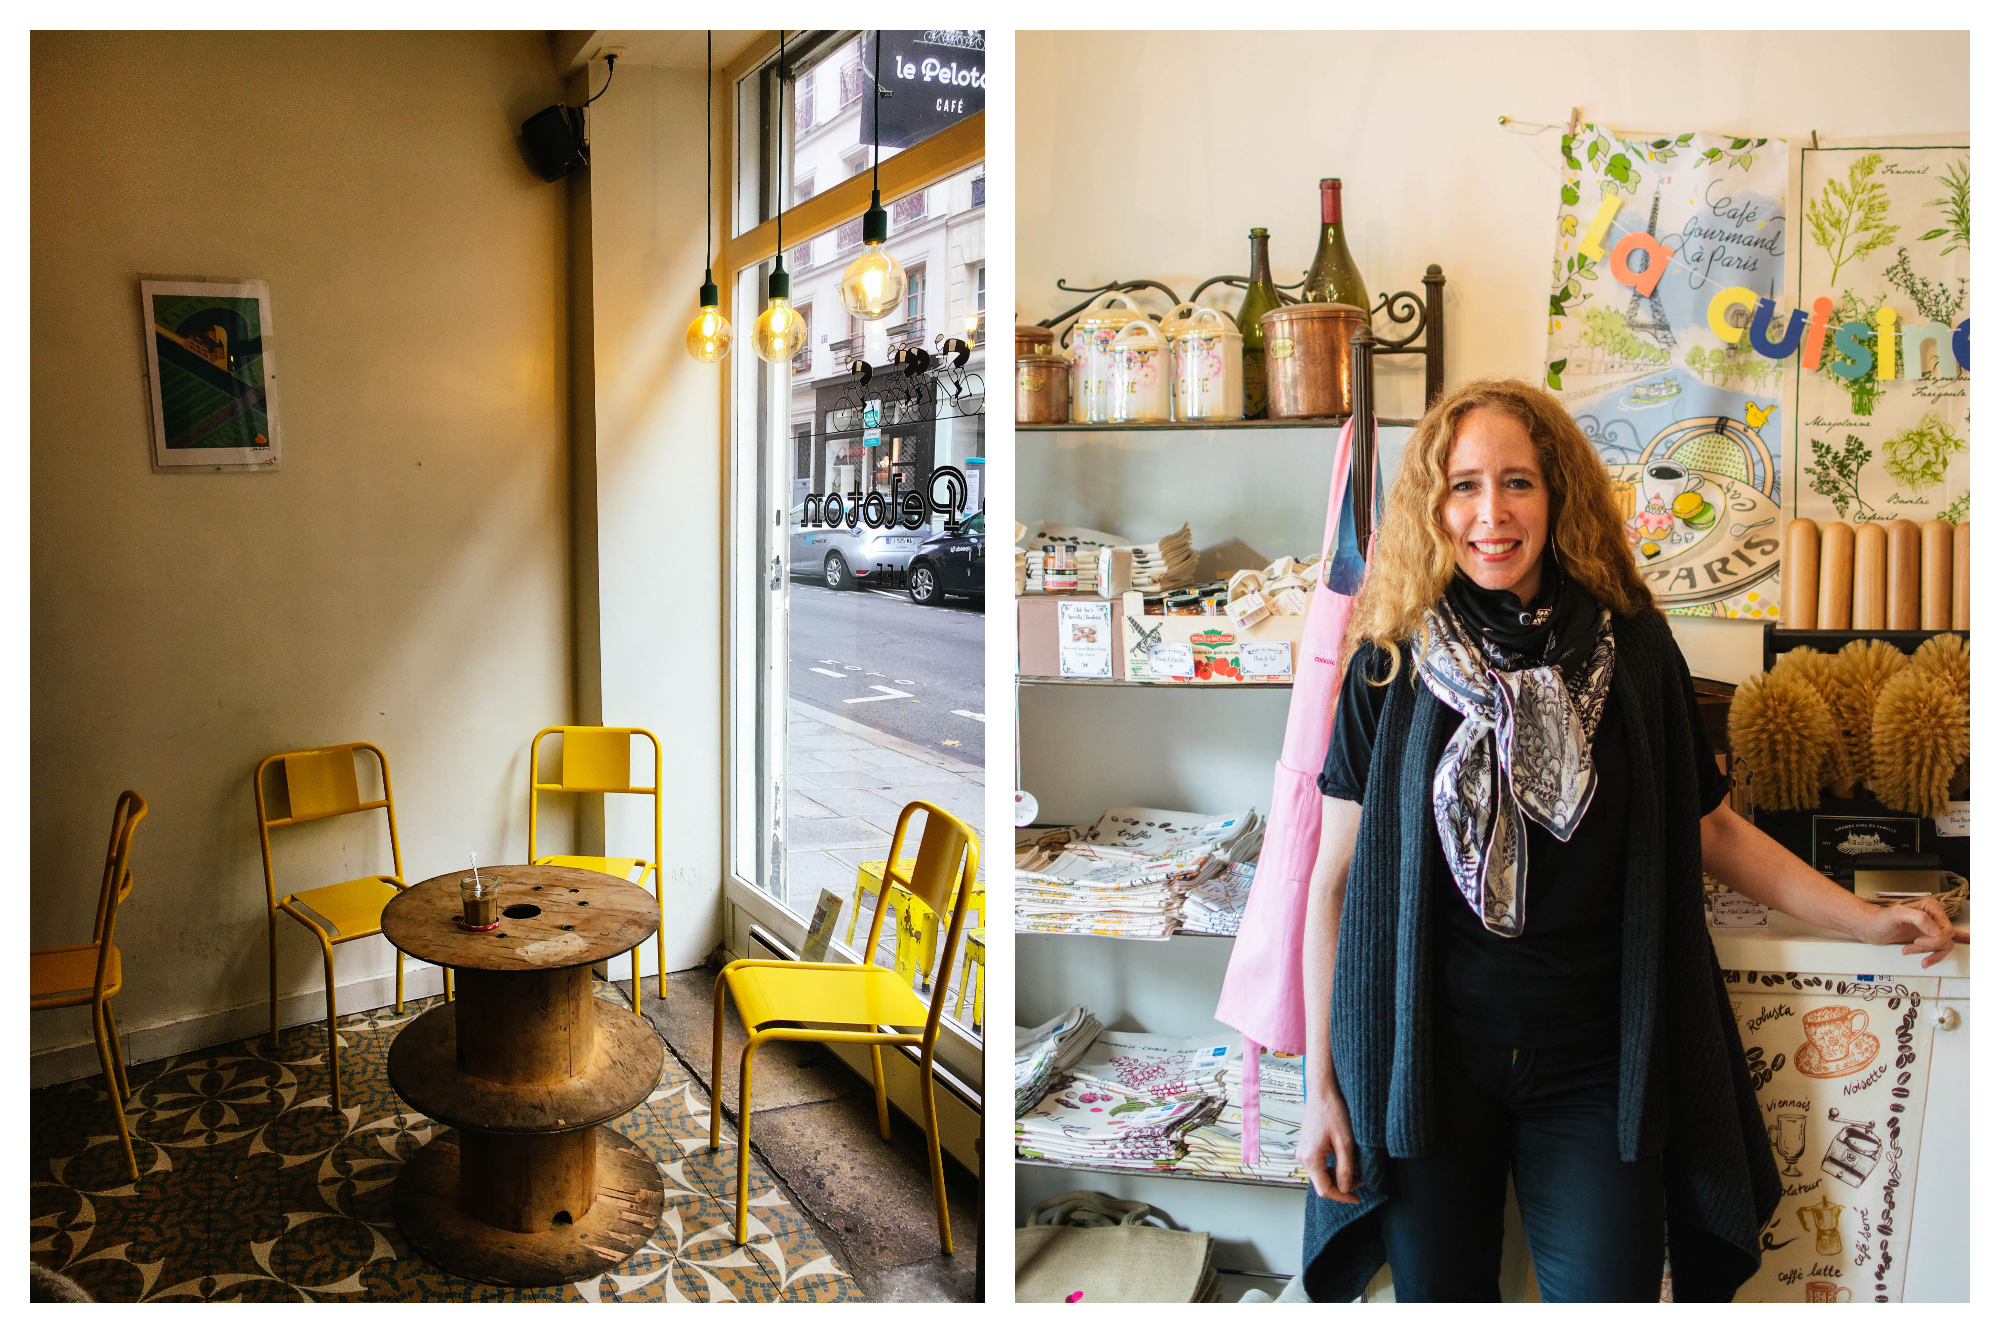 On left: Cheerful yellow metal chairs await the morning coffee crowd at Le Peloton, a popular coffee shop in Le Marais. On right: Jane Bertch smiles in the kitchen of La Cuisine Paris, the cooking school she founded, located on the Seine River.